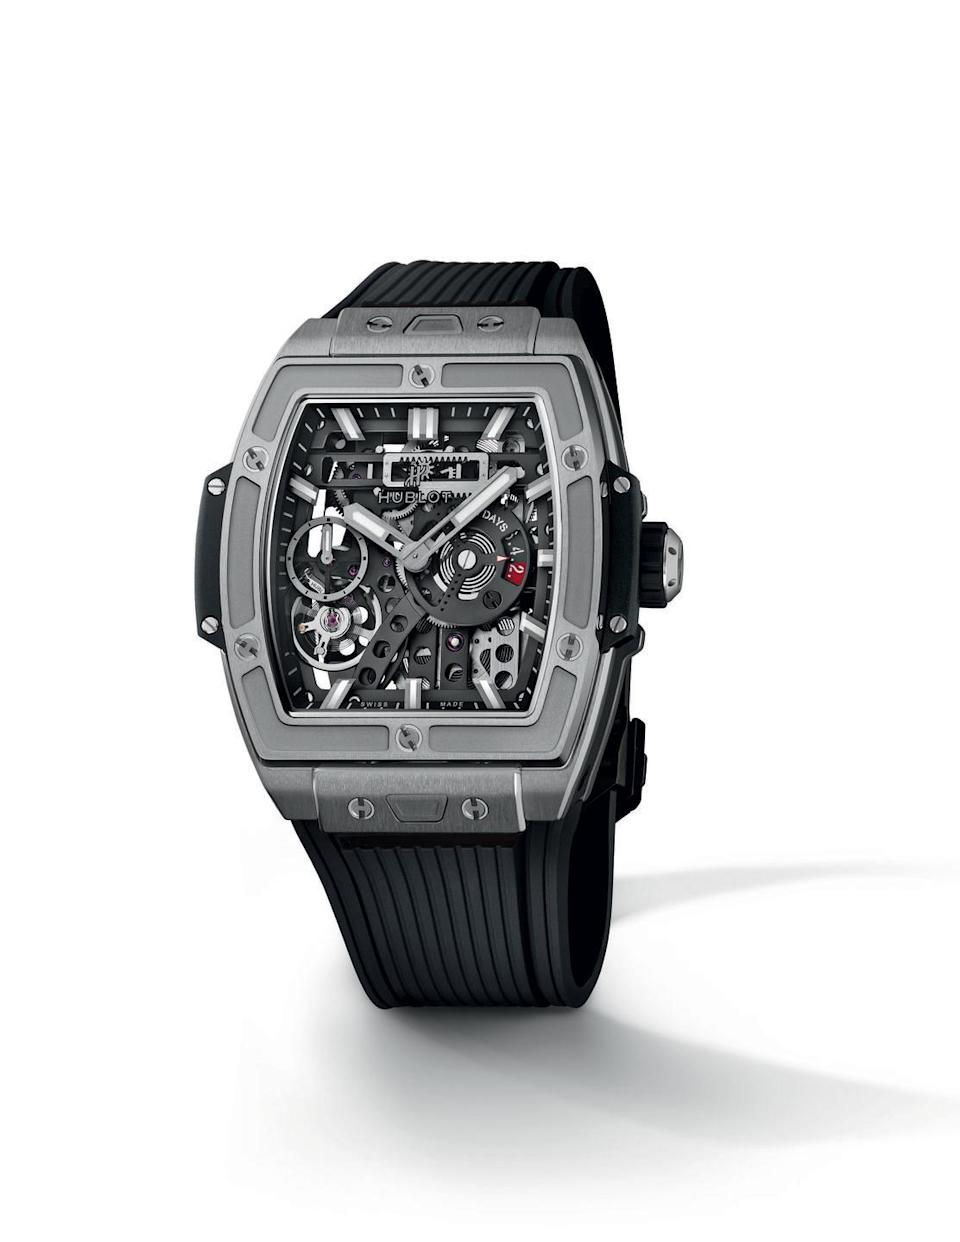 """<p>Hublot Spirit Of Big Bang Meca-10 (release date tba)<br></p><p>There are men's watches, then there are Hublot watches. Available in three versions, titanium, black ceramic and 'king gold' alloy, the Spirit of Big Bang Meca-10 is named after its groundbreaking movement, which packs a 10-day power reserve, and represents one of a handful of strong 2020 releases for the brand. Hublot's peerless technical design chops are visible in the trademark open working, topped off with a trademark chunky rubber strap, making this as impressive as it is unapologetically masculine.</p><p>From £20,000; <a href=""""https://www.hublot.com/en/"""" rel=""""nofollow noopener"""" target=""""_blank"""" data-ylk=""""slk:hublot.com"""" class=""""link rapid-noclick-resp"""">hublot.com</a></p>"""